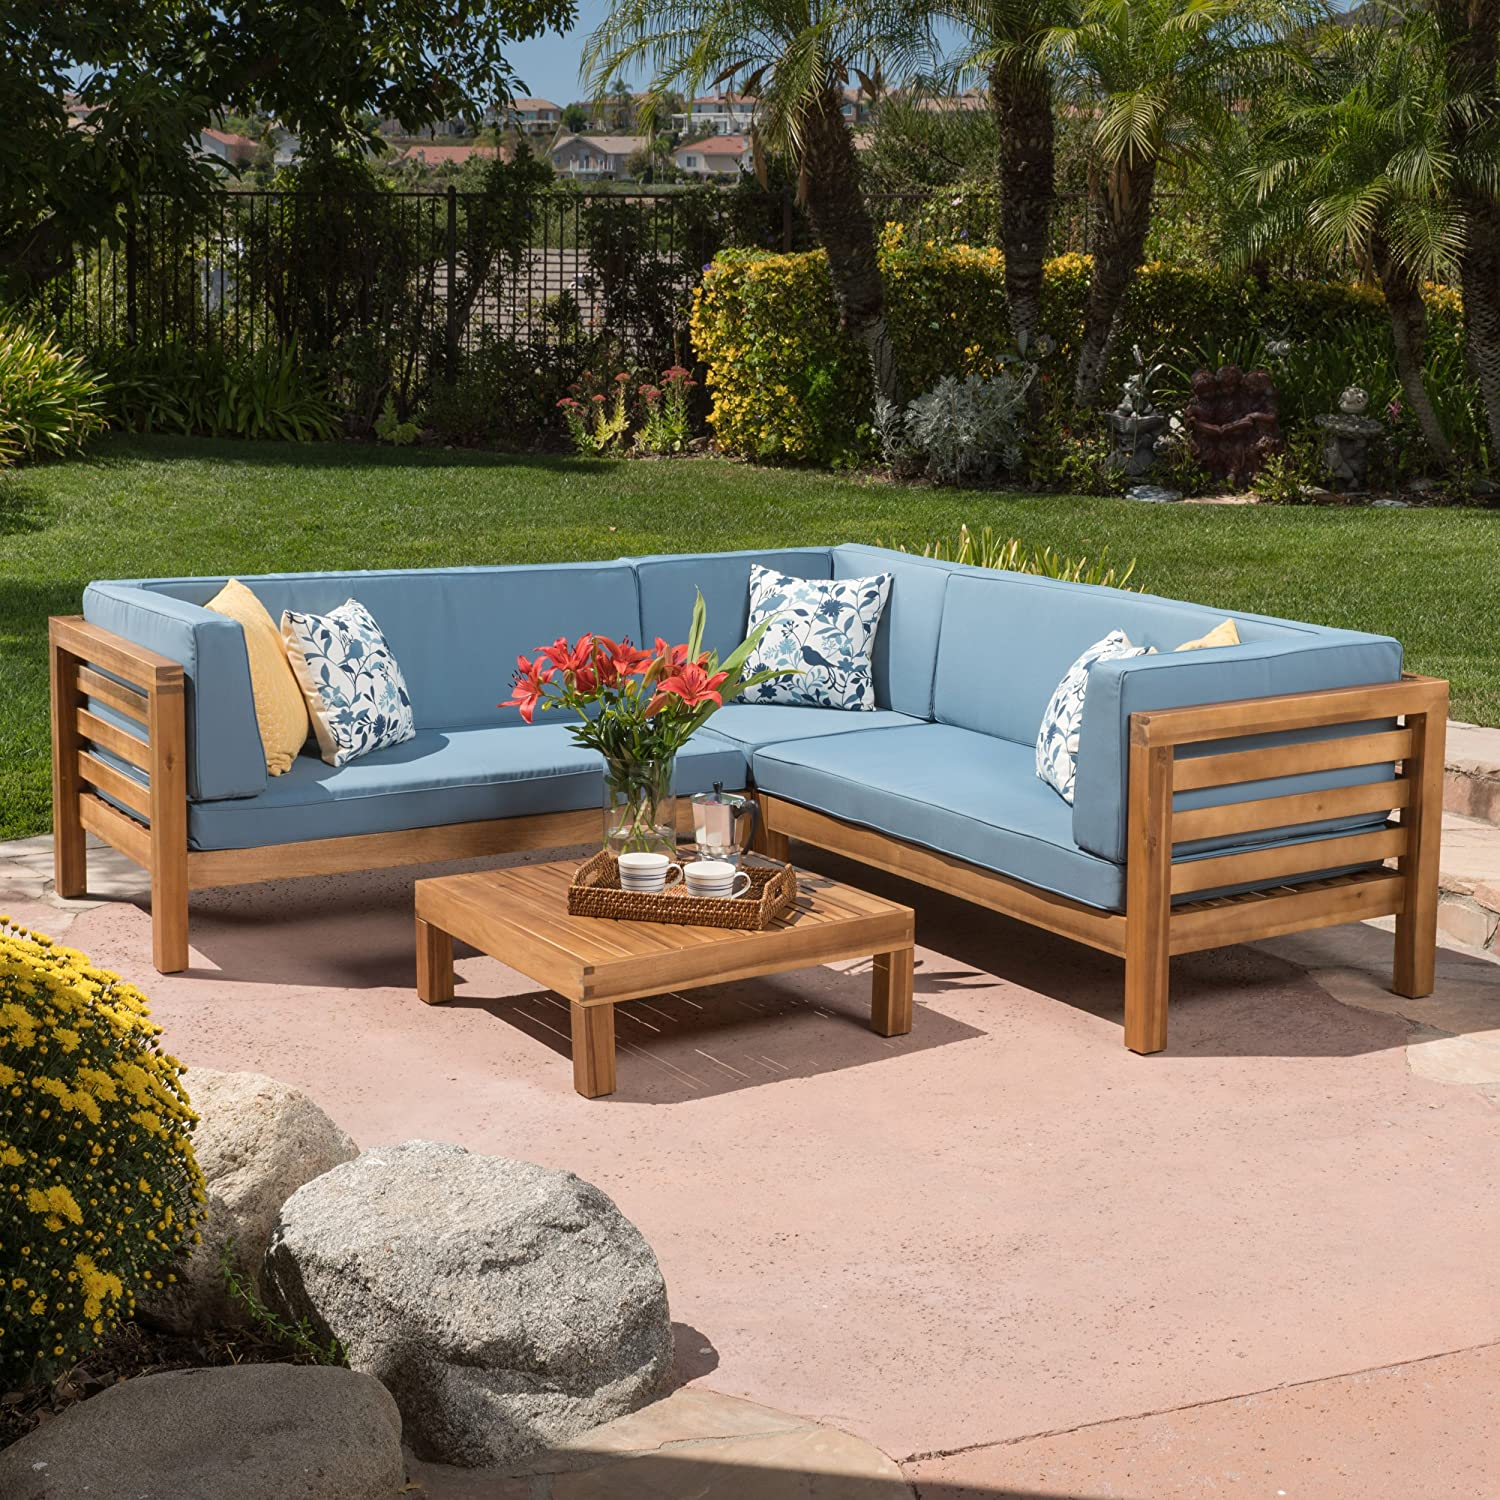 Amazon Ravello Outdoor Patio Furniture 4 Piece Wood Outdoor